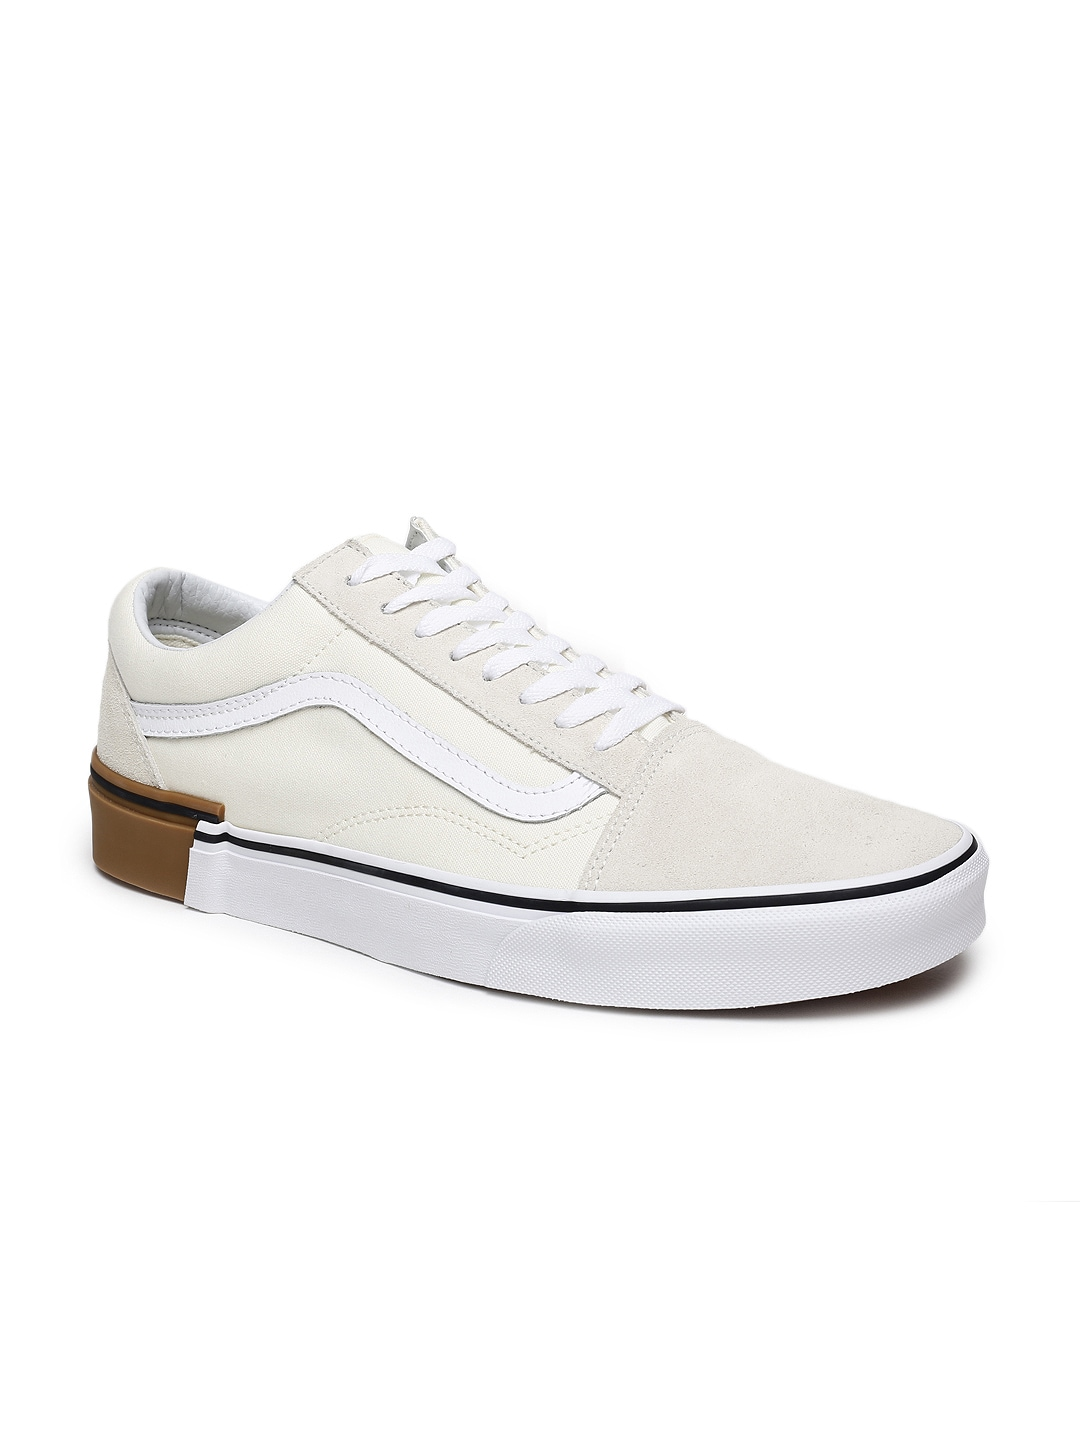 aa50374f95b8 Vans White Shoes - Buy Vans White Shoes online in India